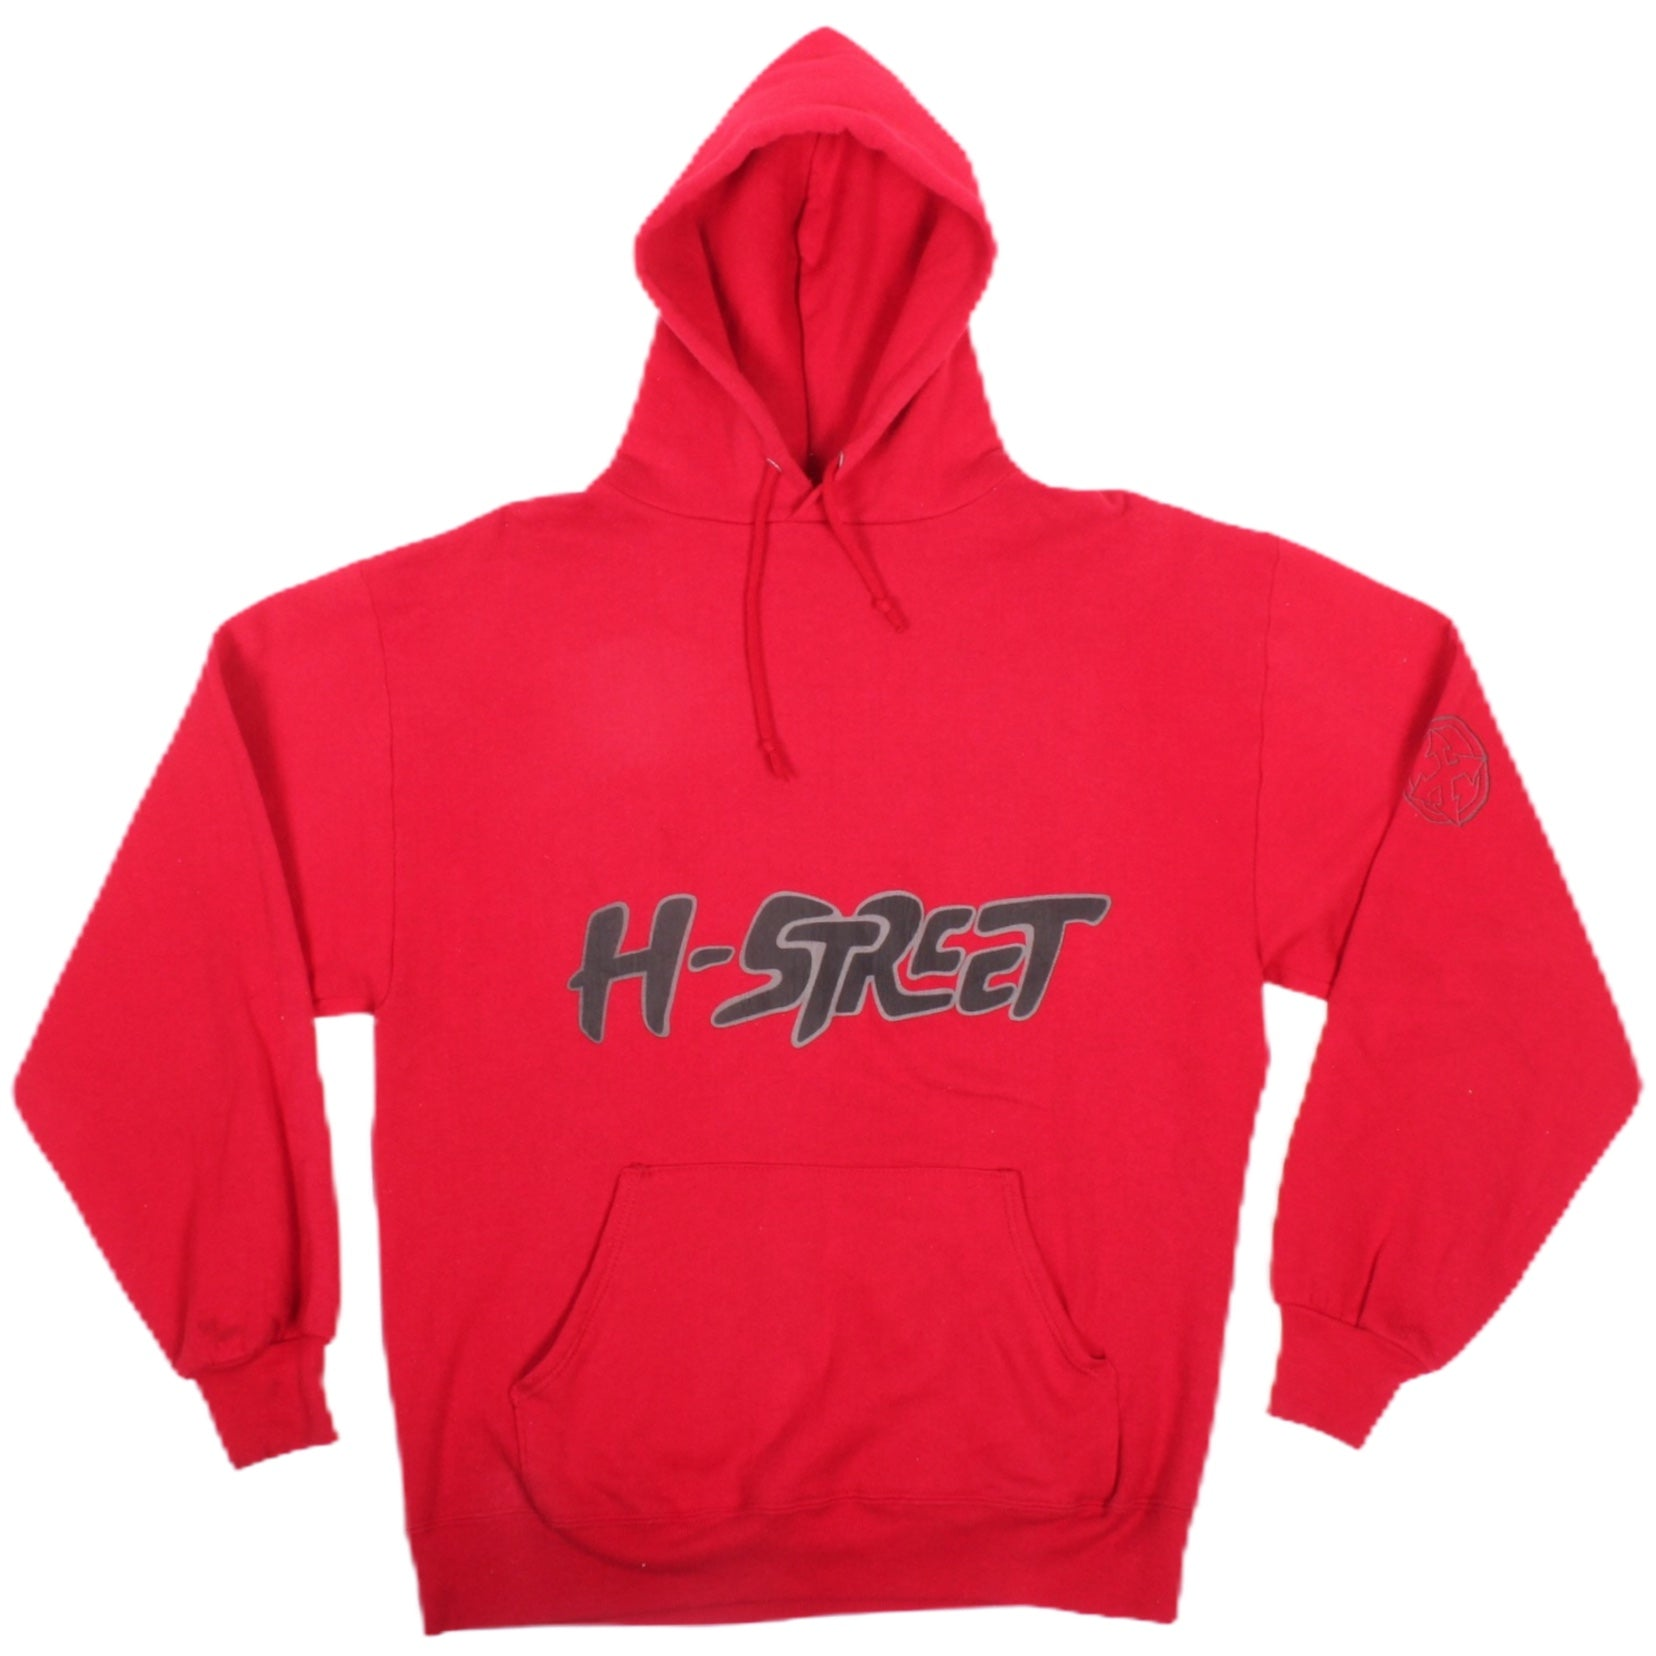 Overripe H-Street Hooded Sweatshirt Red Snug XL (1990)